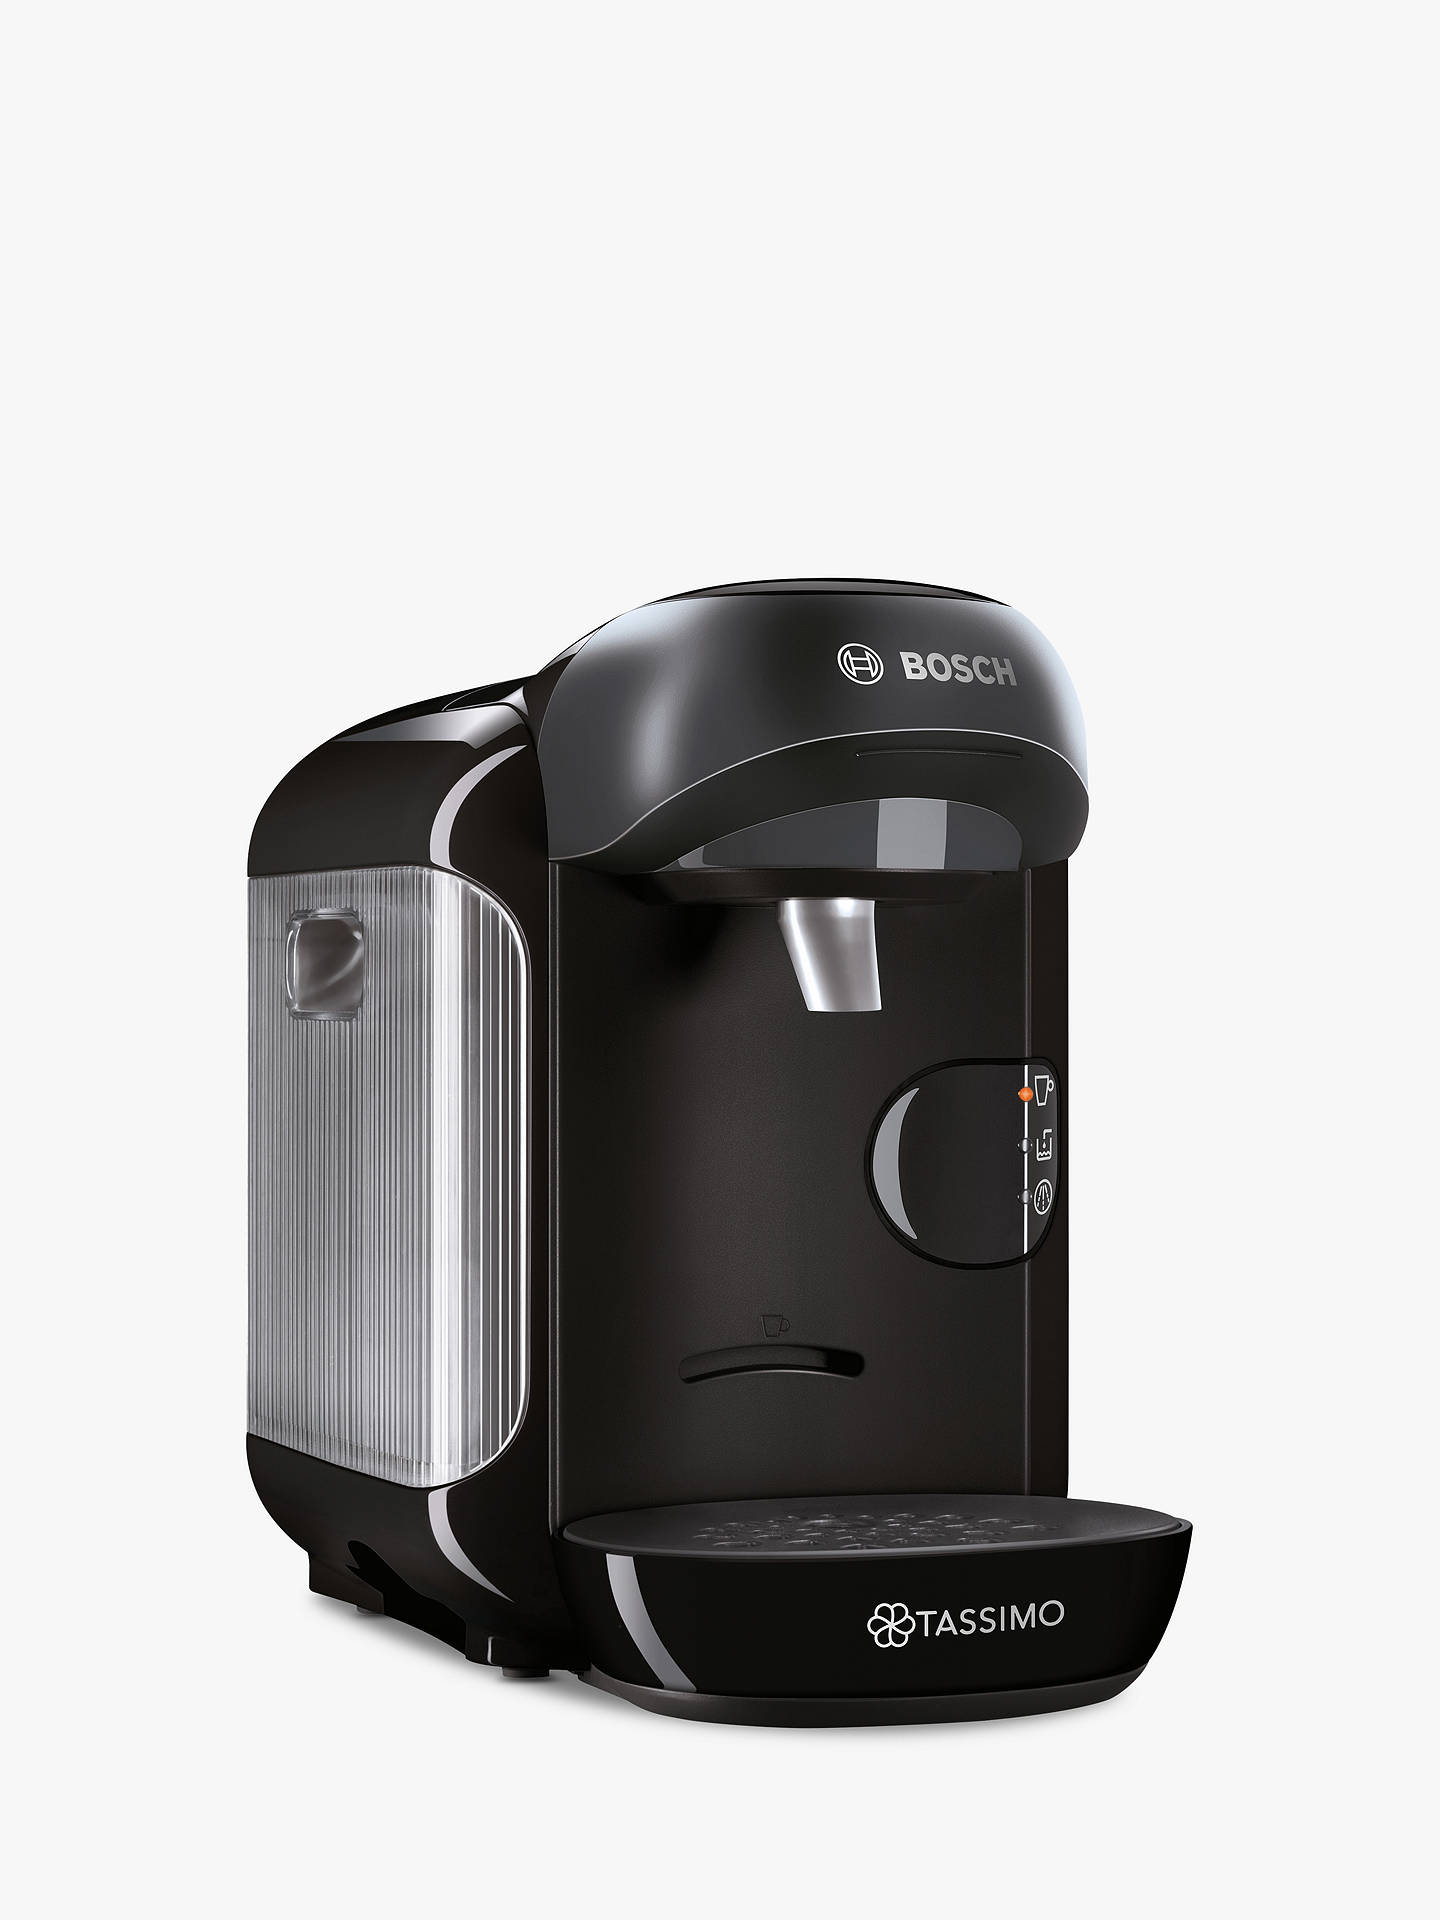 Tassimo Vivy Coffee Machine by Bosch, Black at John Lewis ...